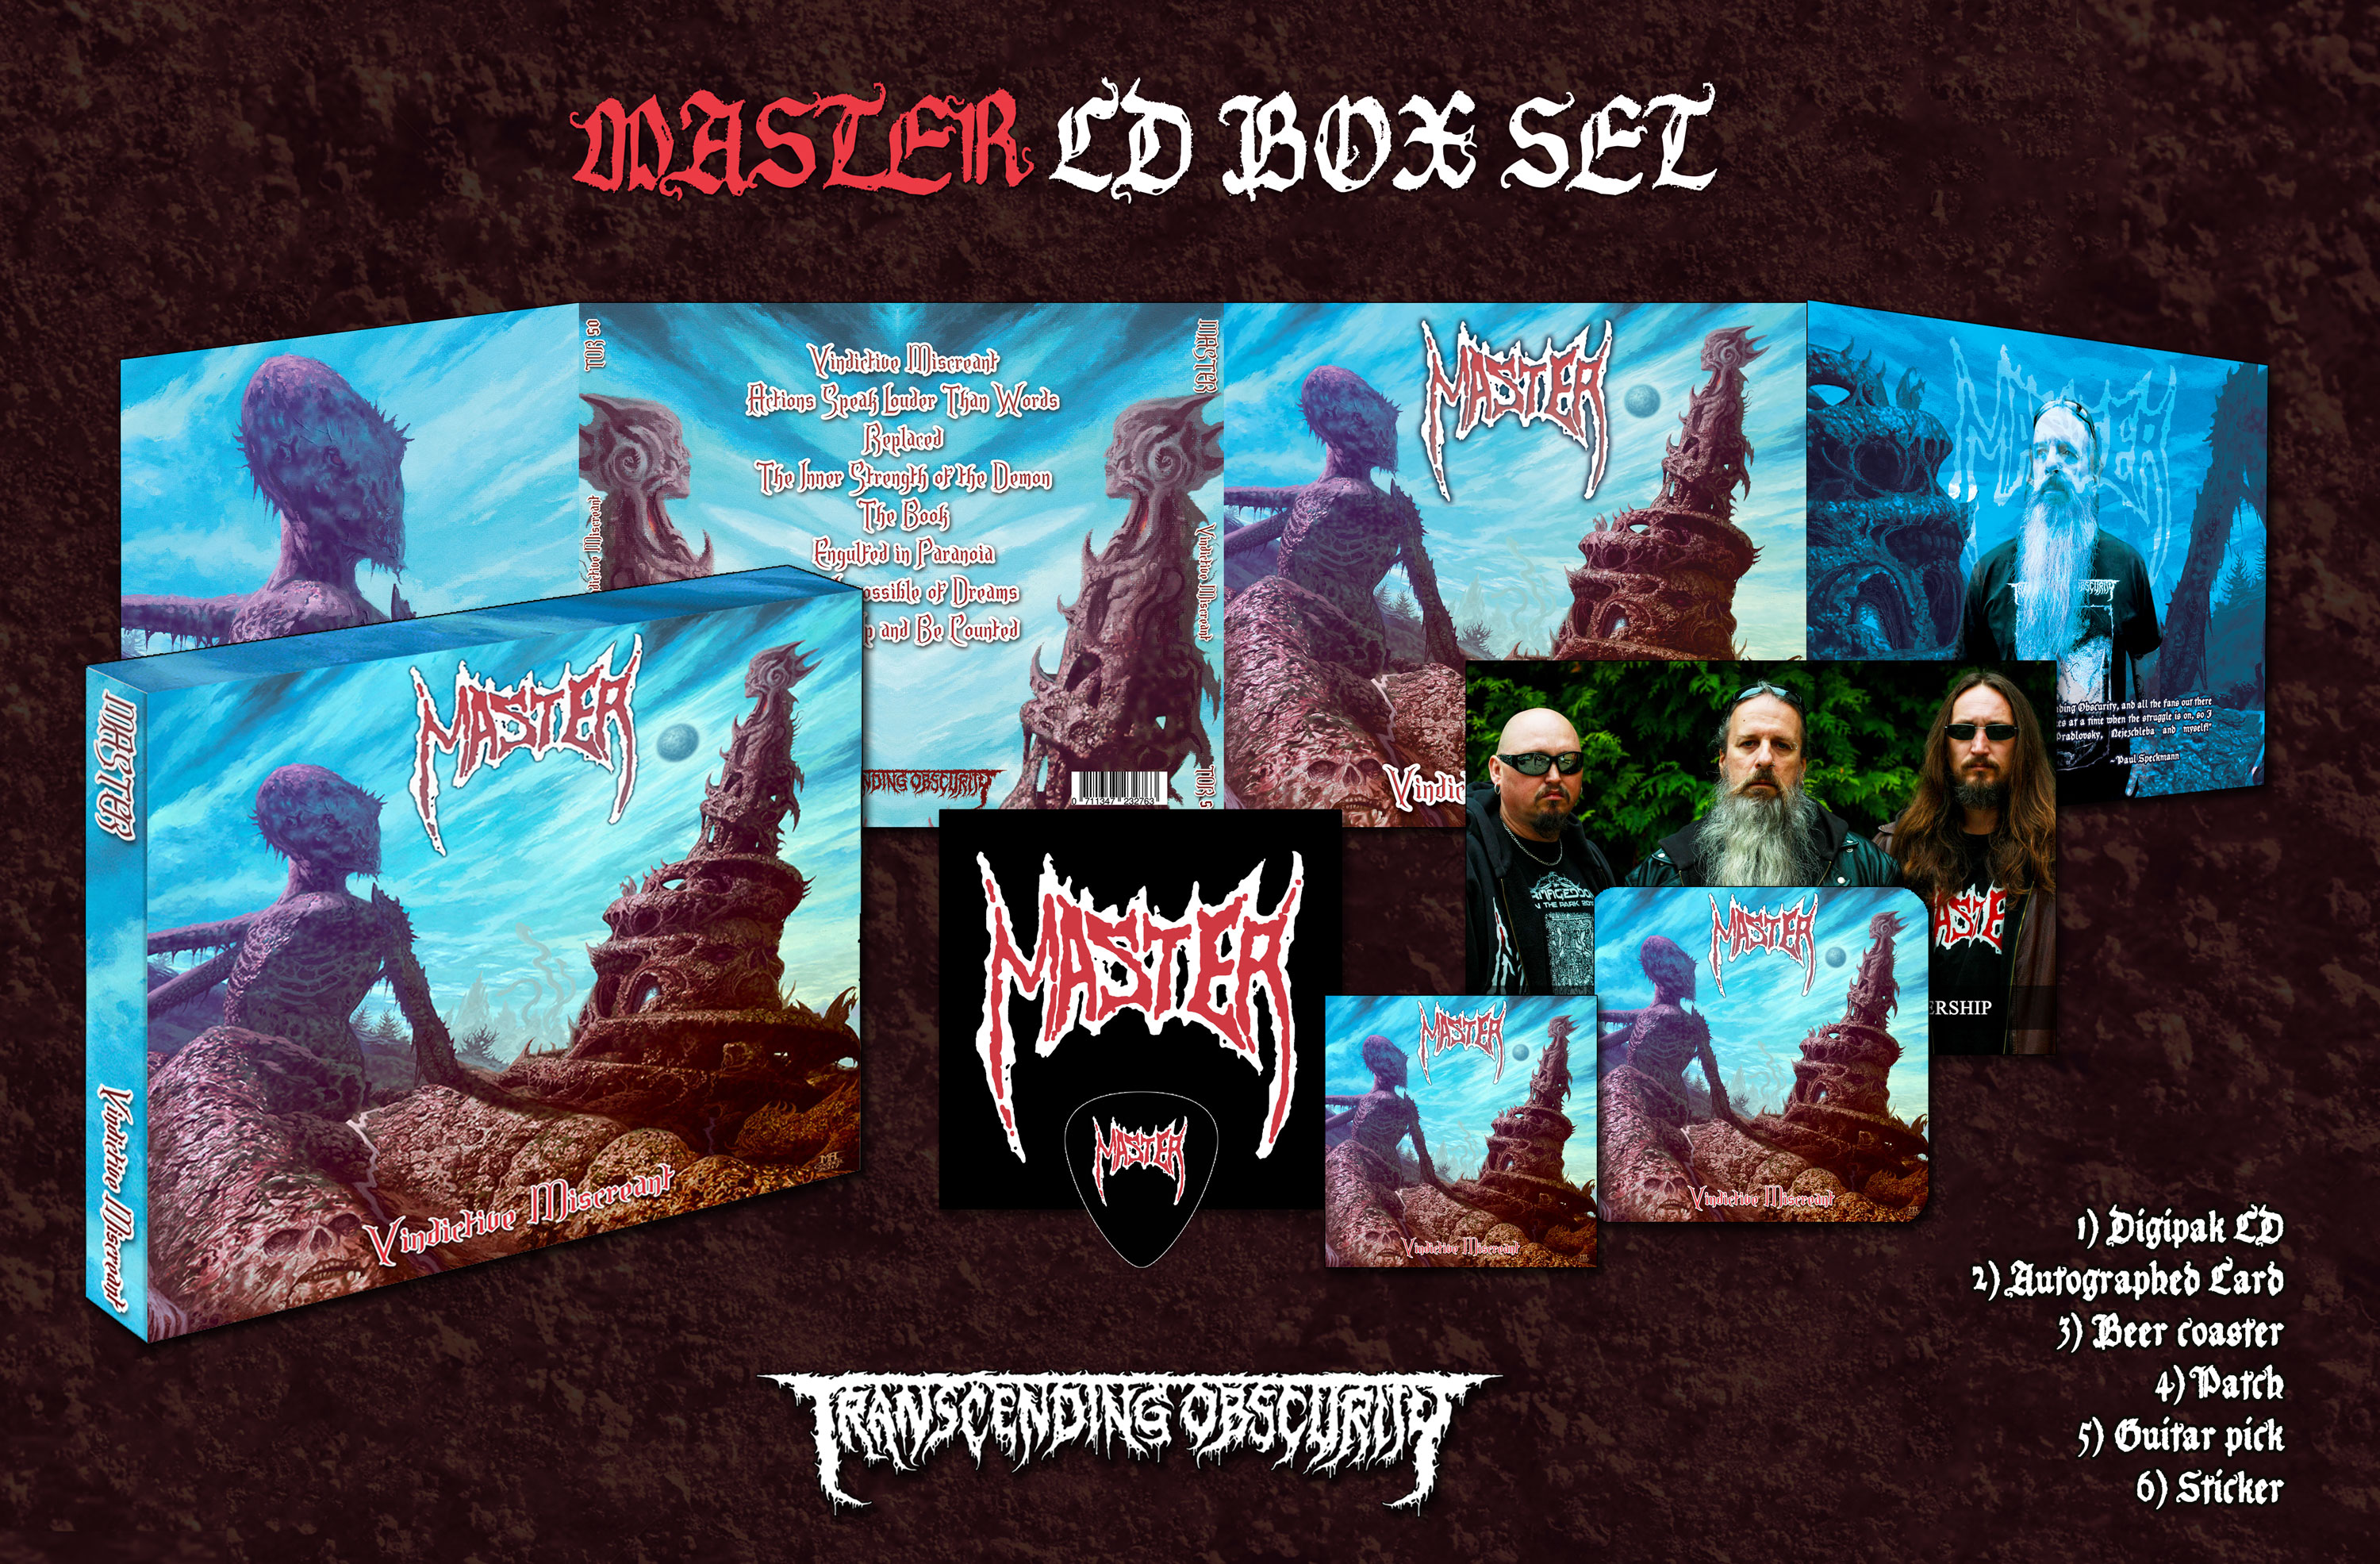 MASTER (Czech Republic) - Vindictive Miscreant CD Box Set (Limited to 200)